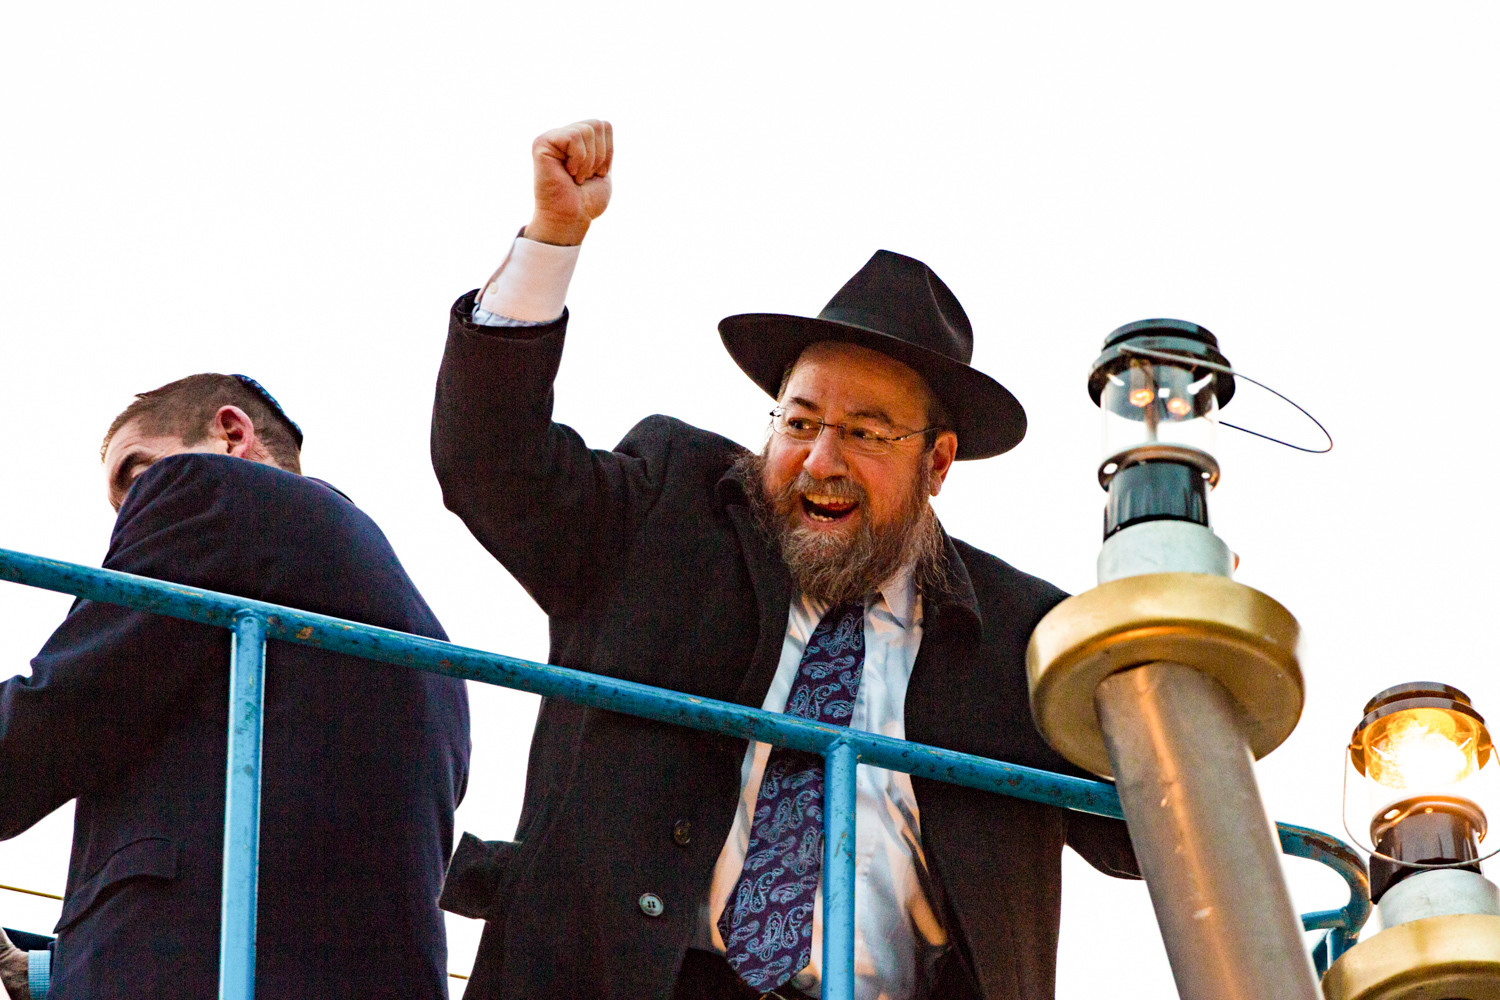 Rabbi Levi Shemtov celebrates with a raised fist to the crowd below after successfully lighting the sixth branch of the menorah on Sunday at the Riverdale Monument.